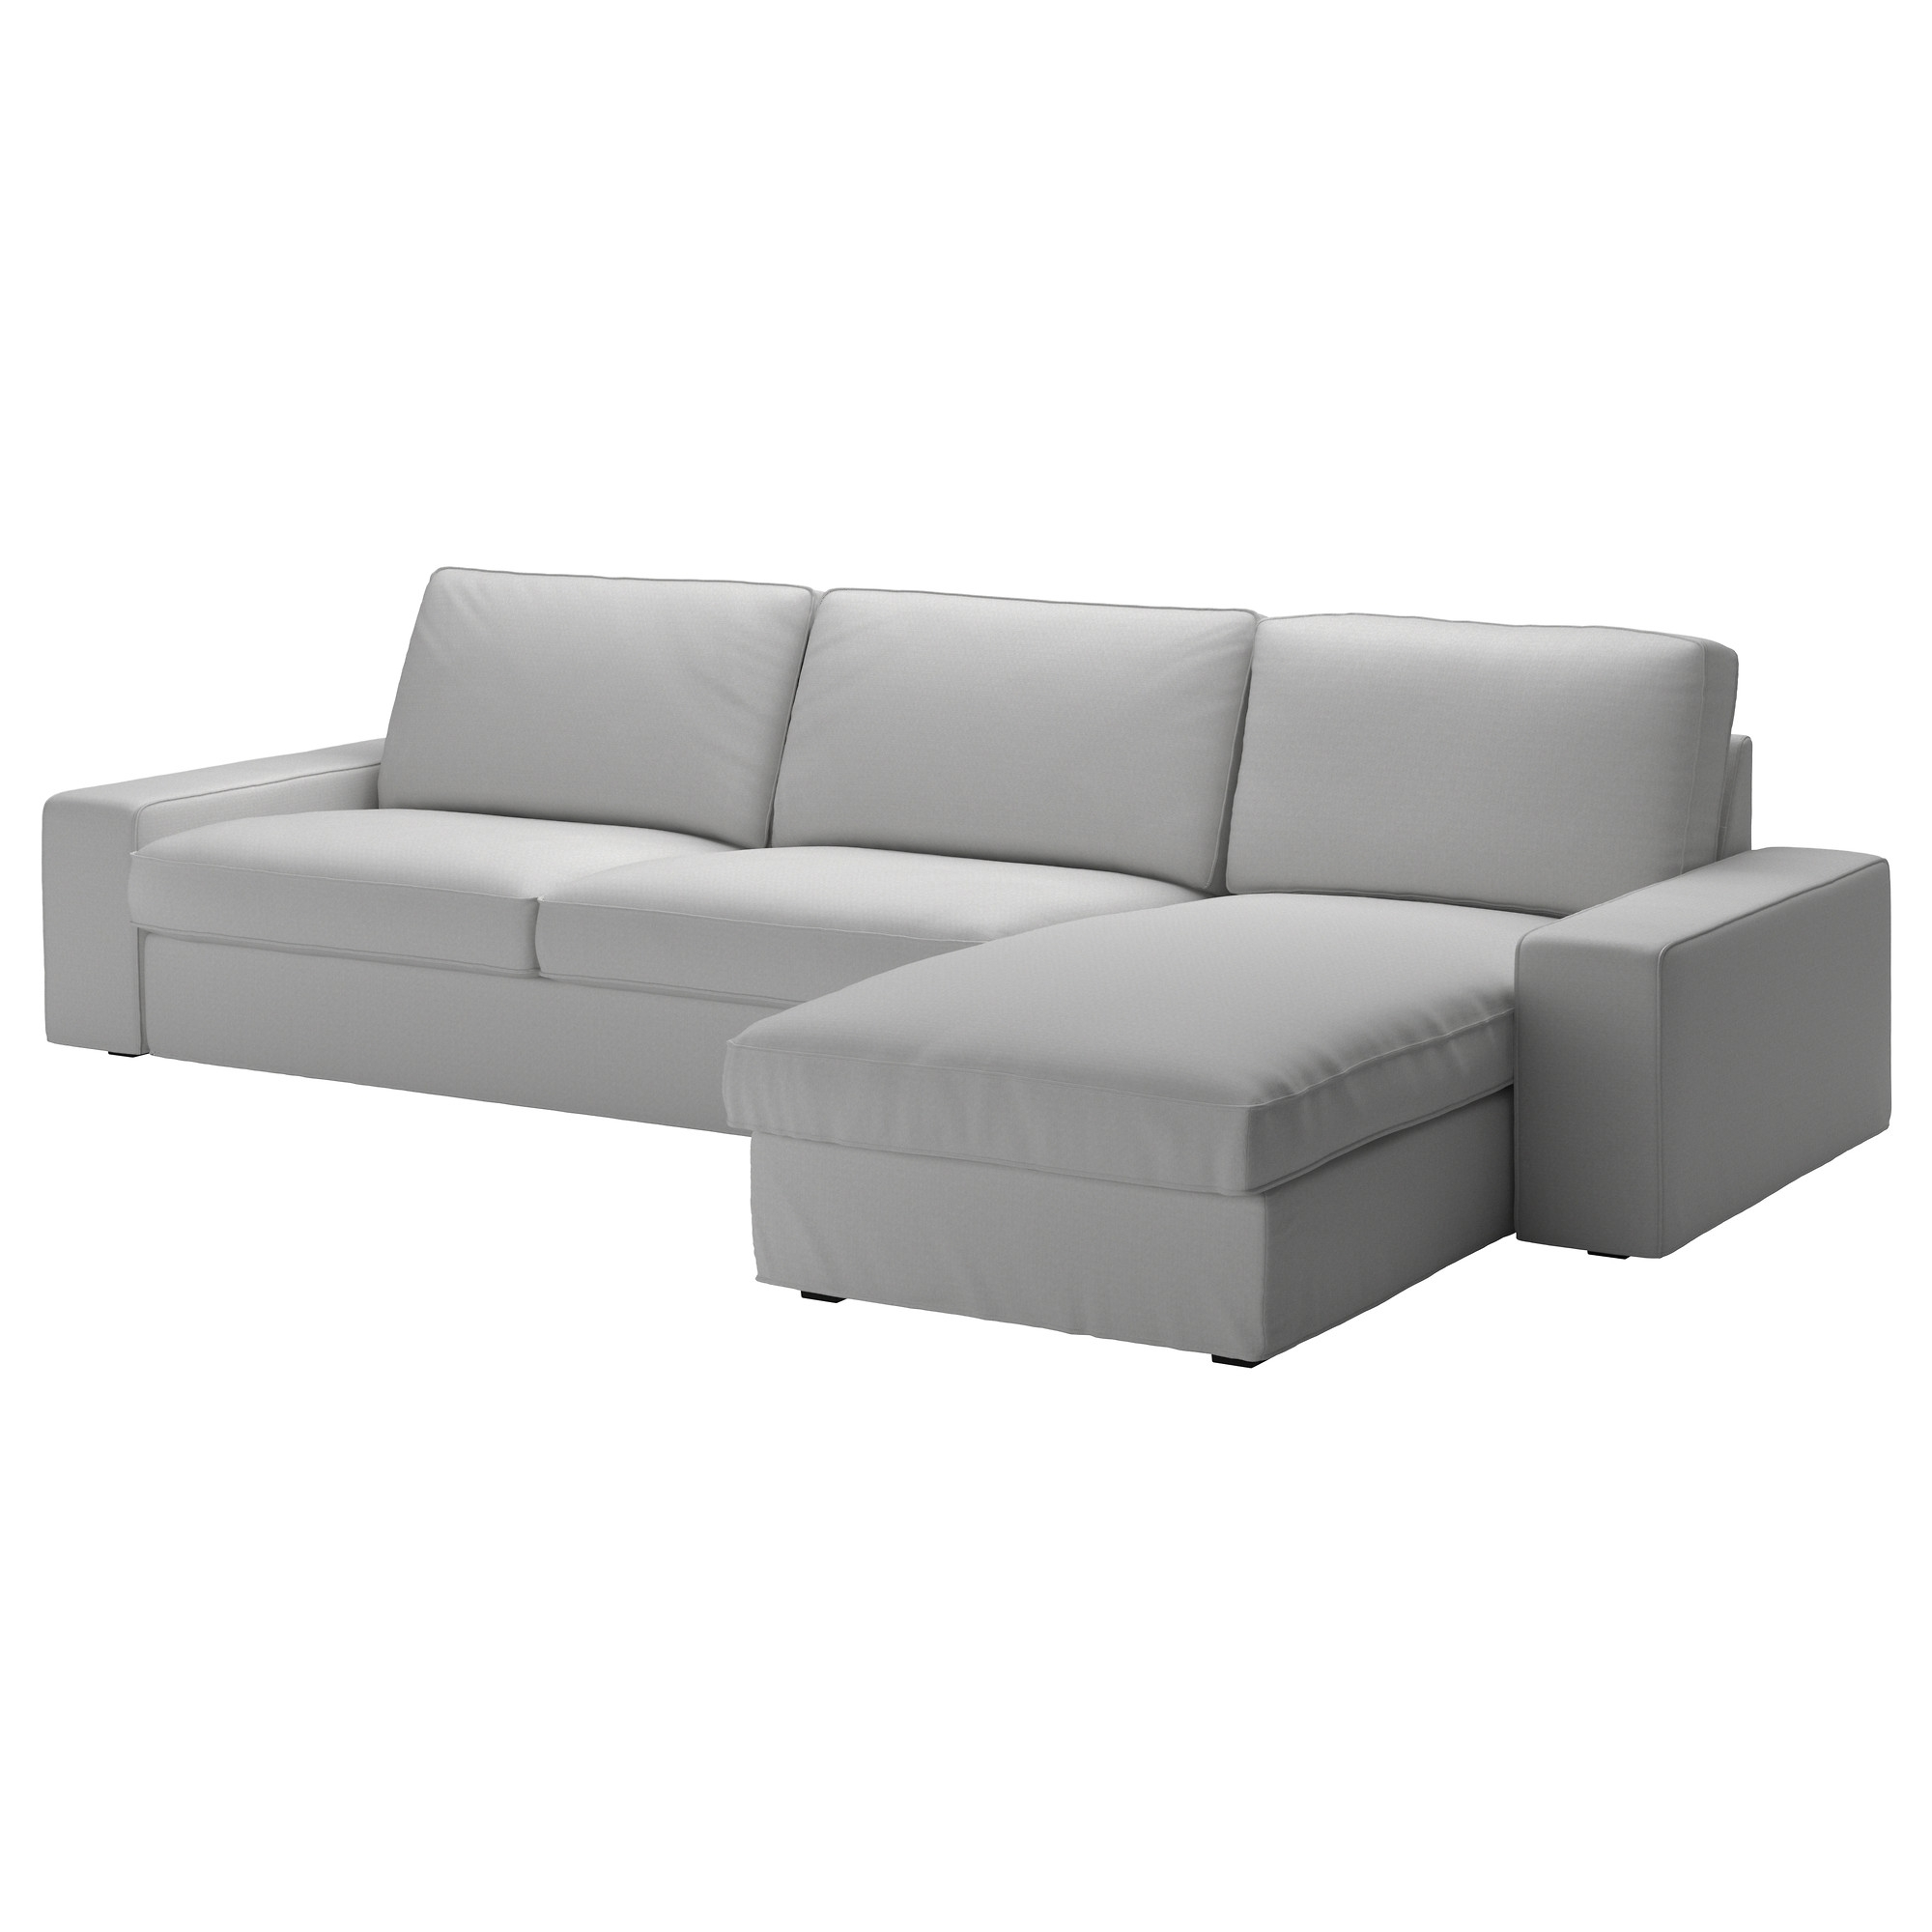 Kivik Sectional, 4 Seat   Orrsta Light Gray   Ikea Pertaining To Sectional Sofas At Ikea (Photo 3 of 15)